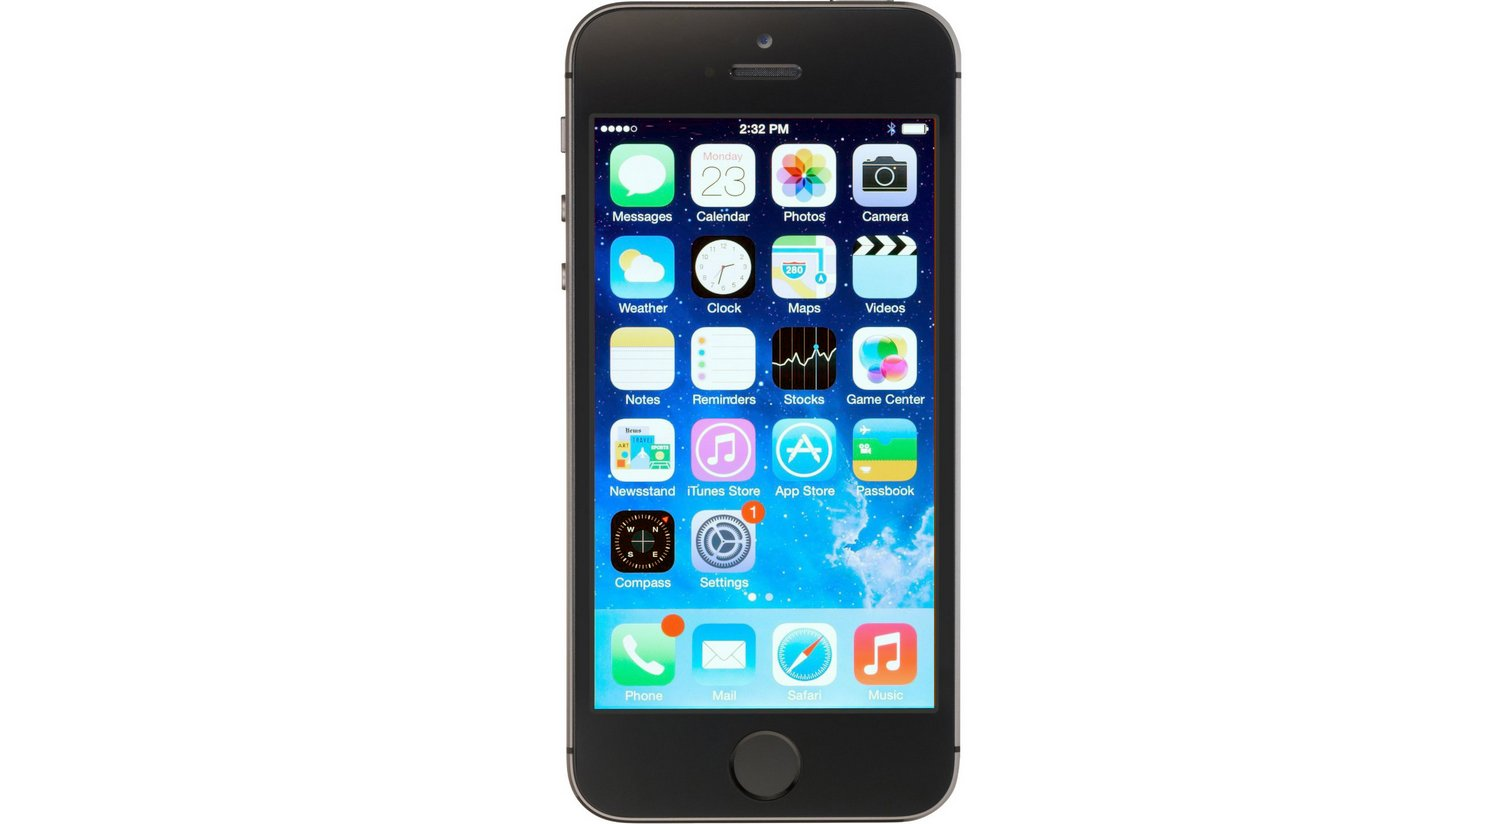 Ap apple iphone 5s space gray 32gb - Amazon Com Apple Iphone 5s 32gb Unlocked Gsm Smartphone Space Gray Cell Phones Accessories